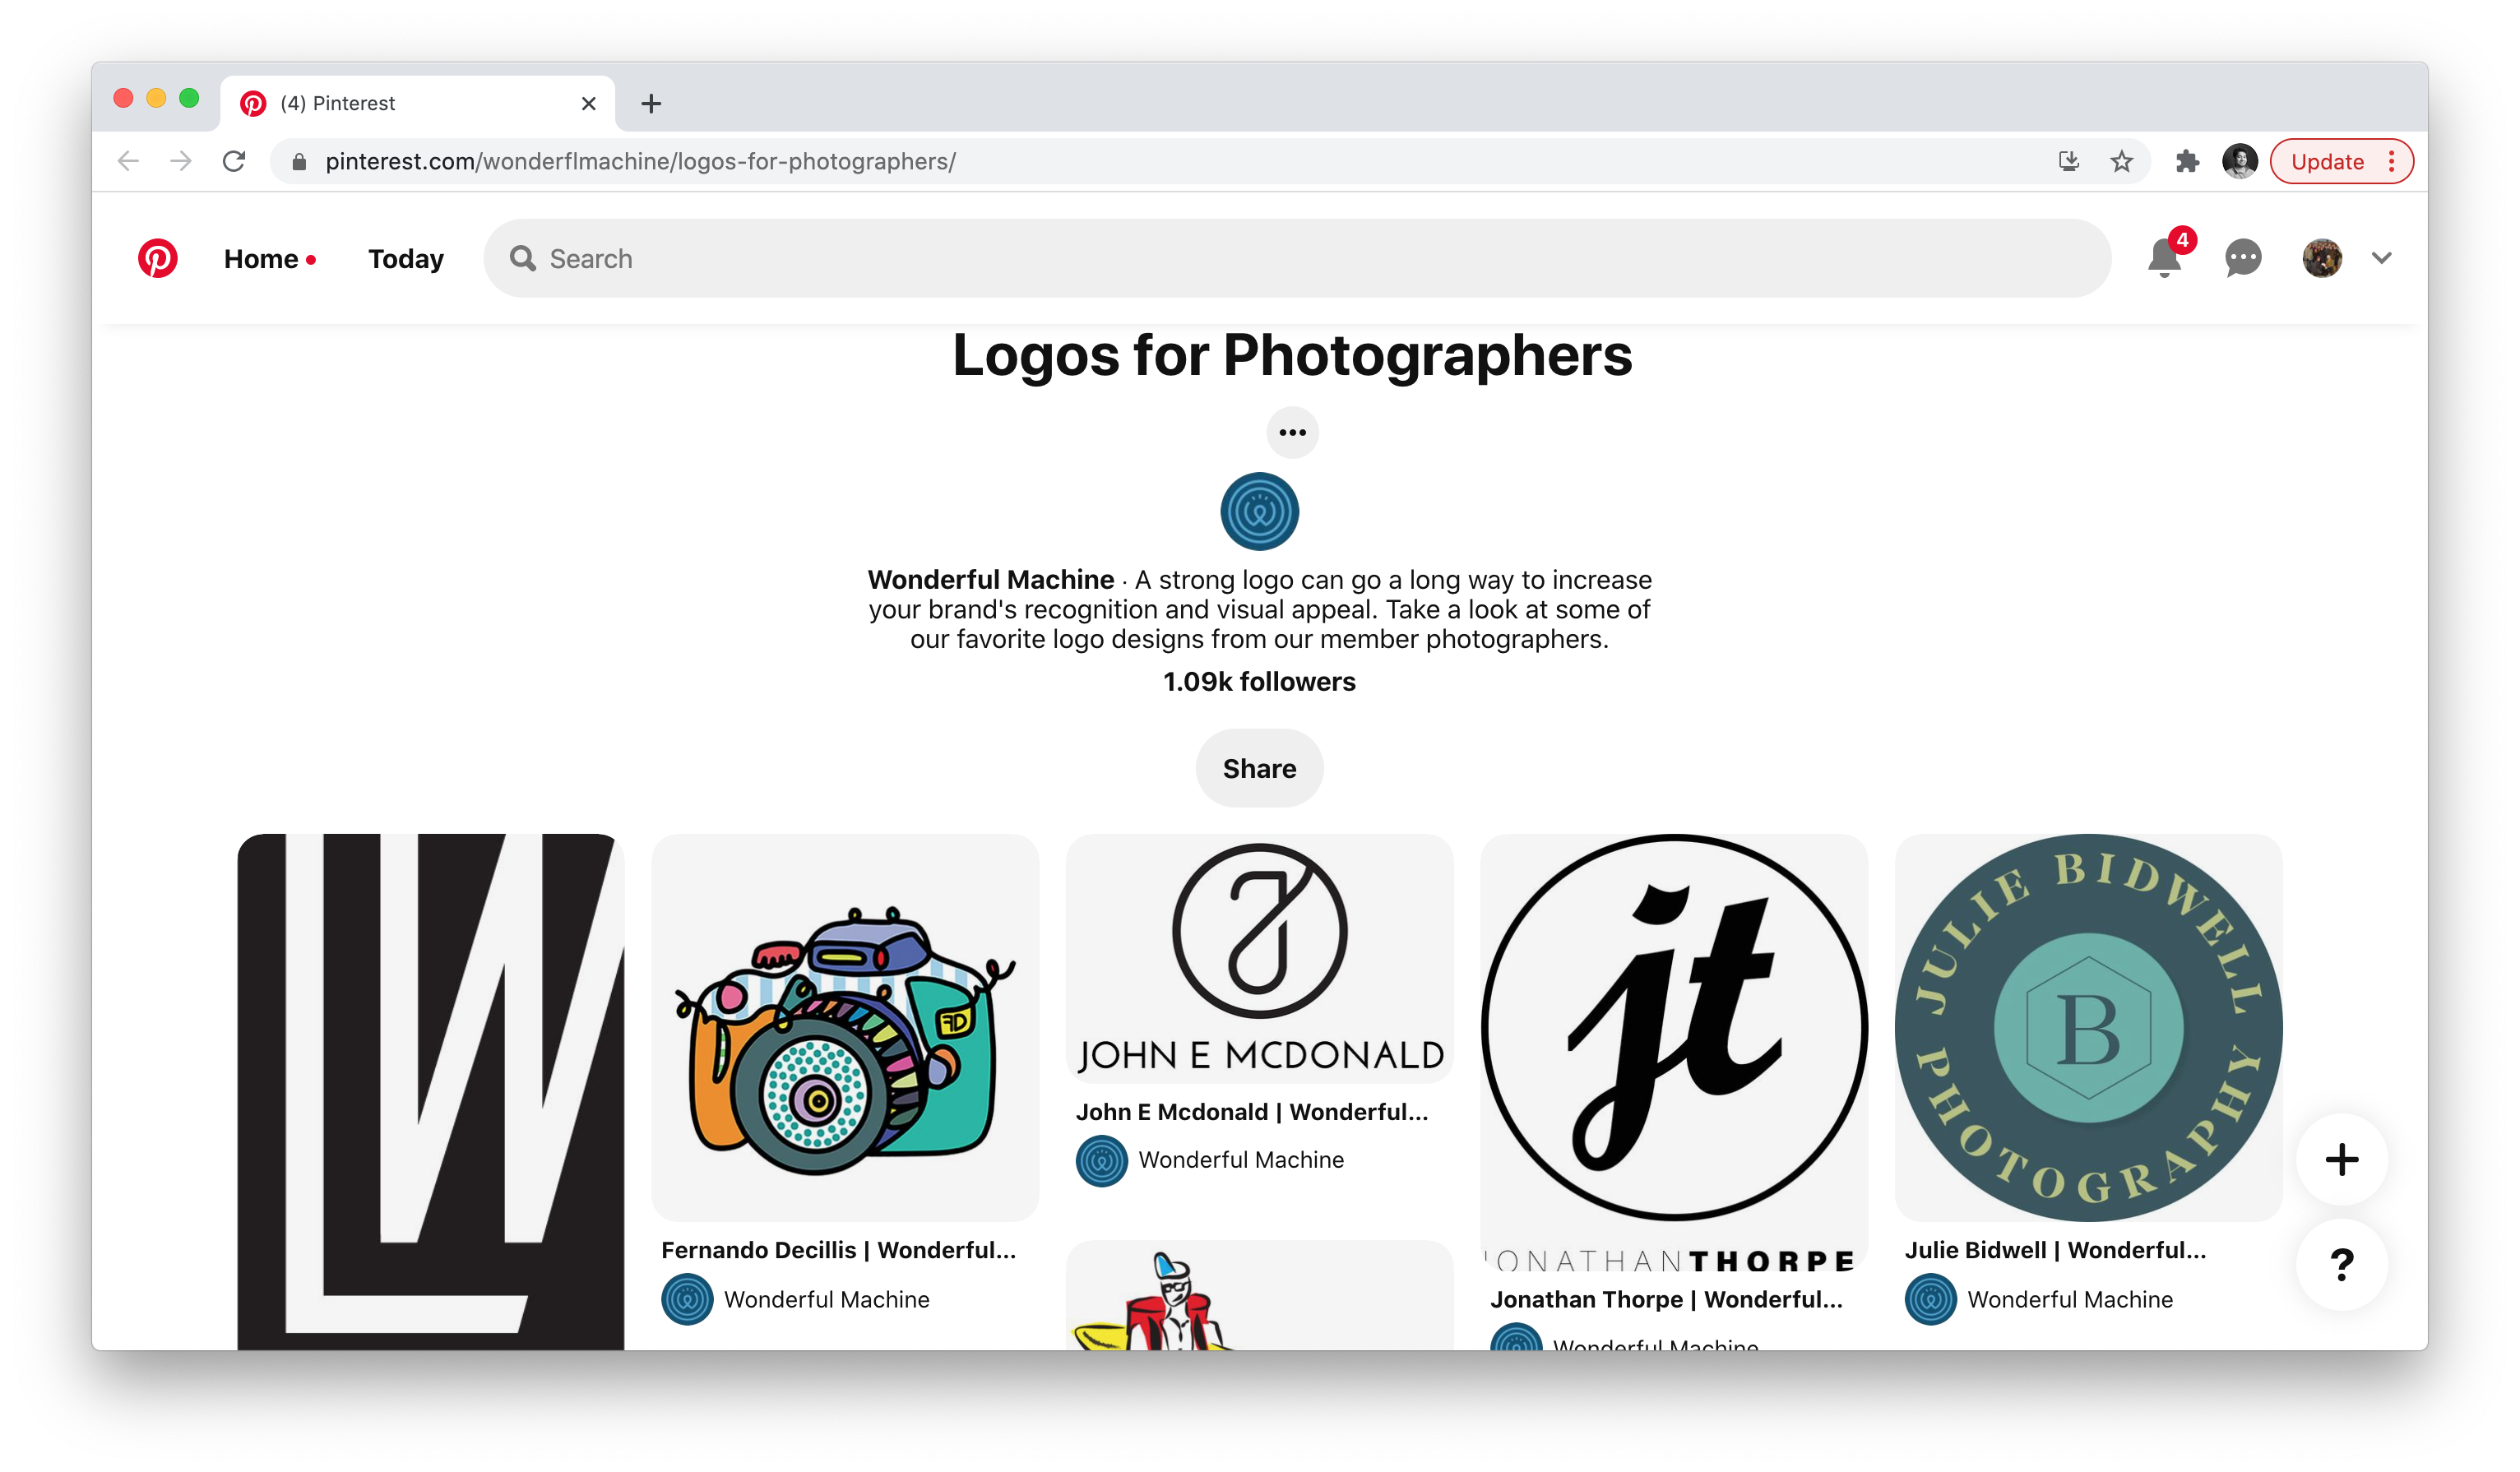 Logos for Photographers Pinterest page